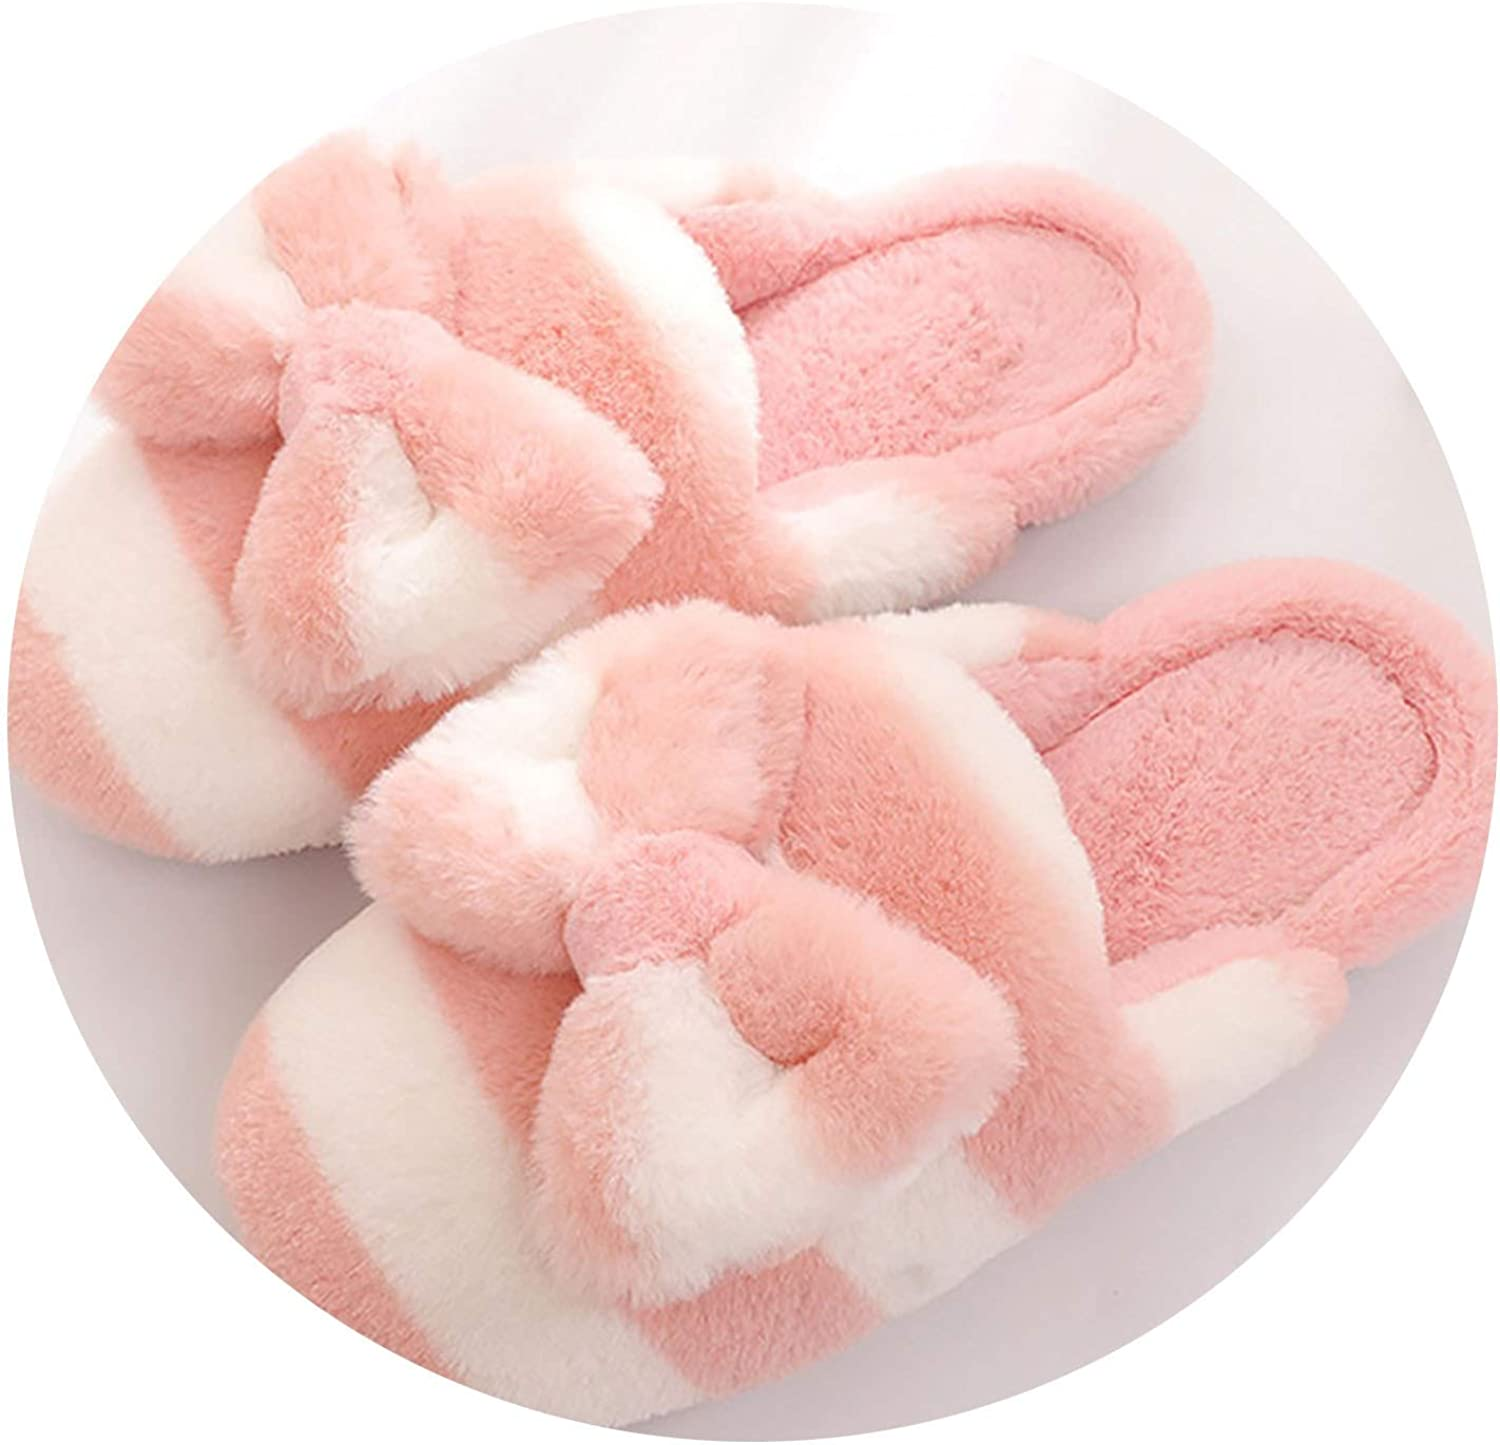 Can't be satisfied Fluffy Slippers Women Butterfly-Knot Striped Slippers with Fur Soft Winter Warm House Slippers,Pink,7.5